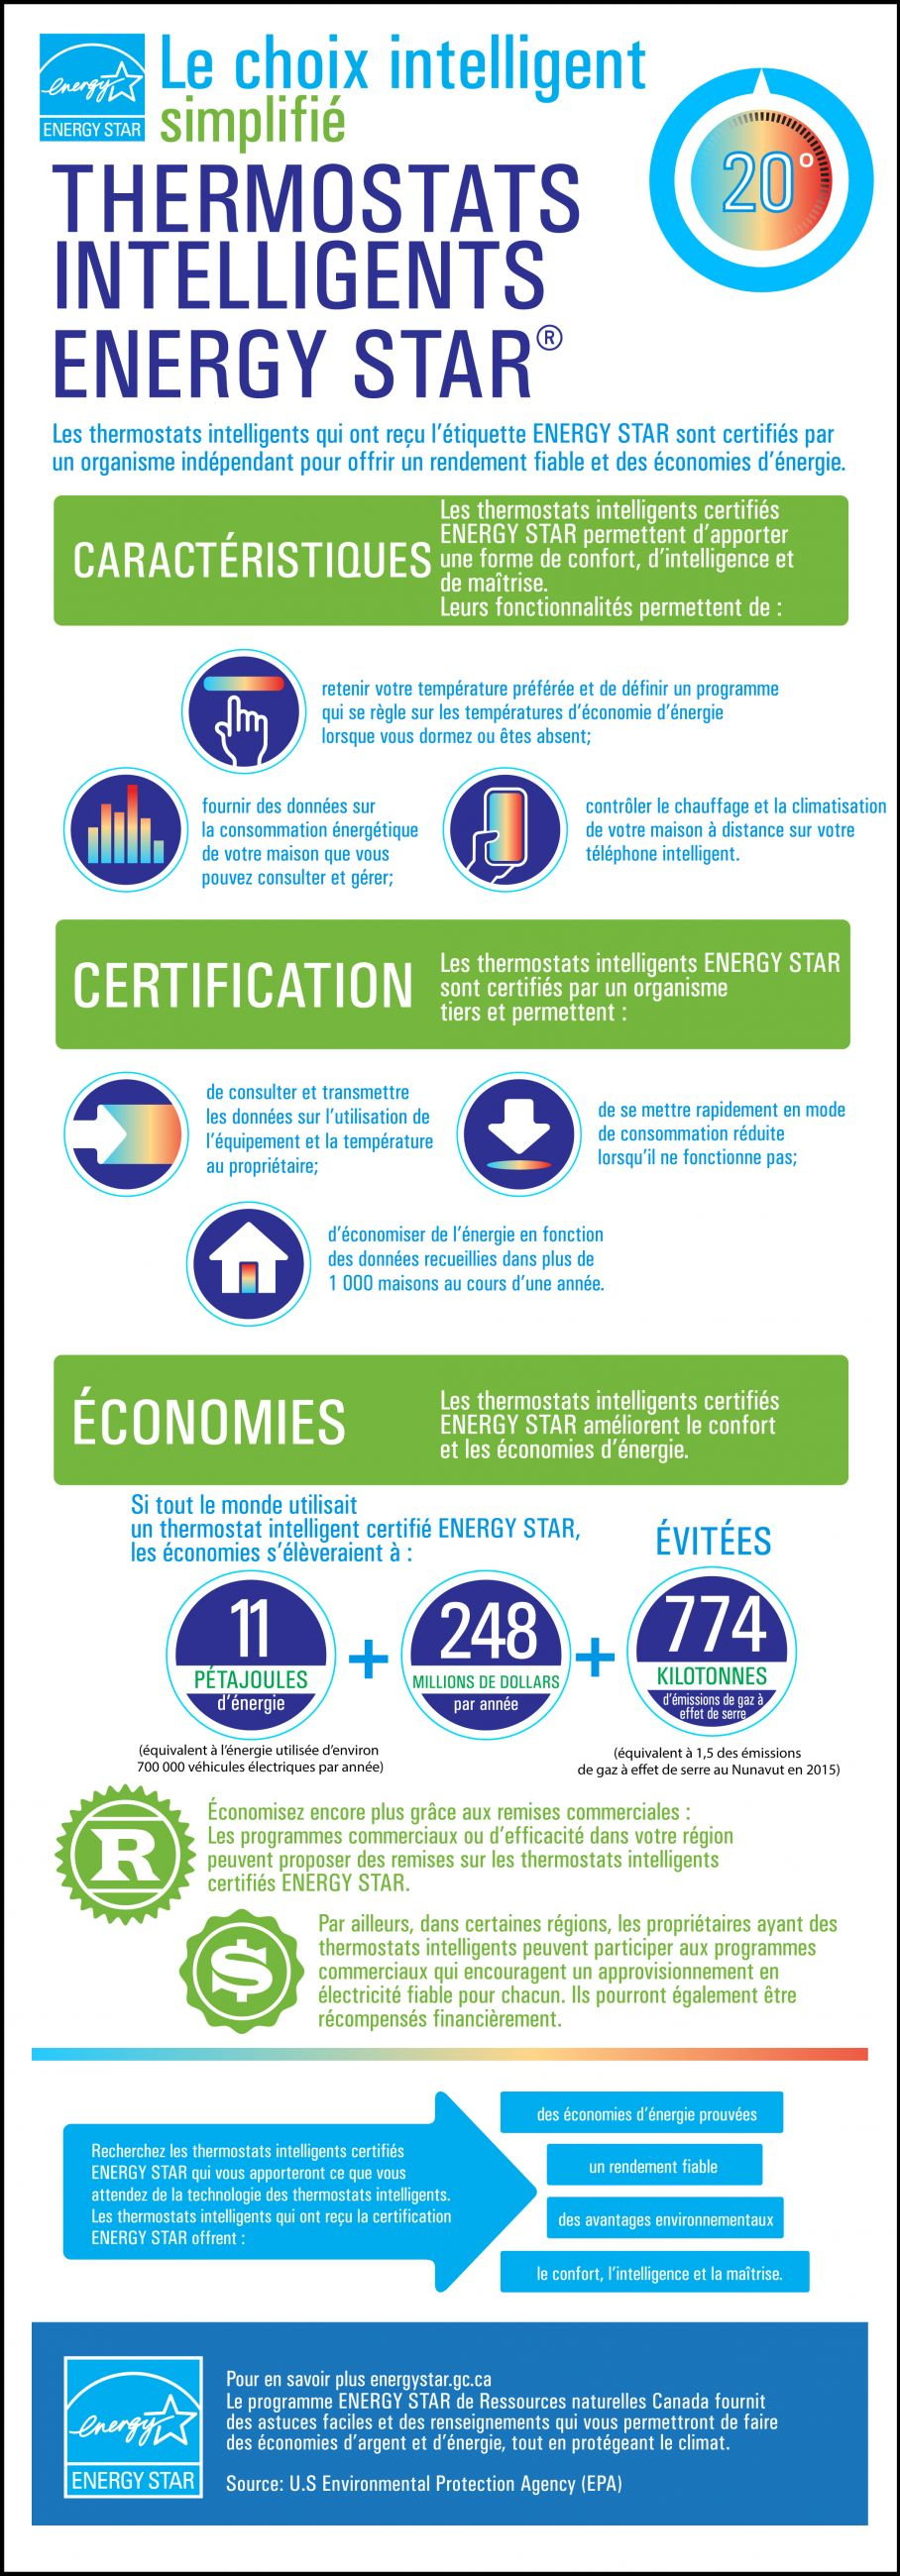 Le choix intelligent simplifié : Thermostats intelligents ENERGY STAR®, décrit ci-dessous.